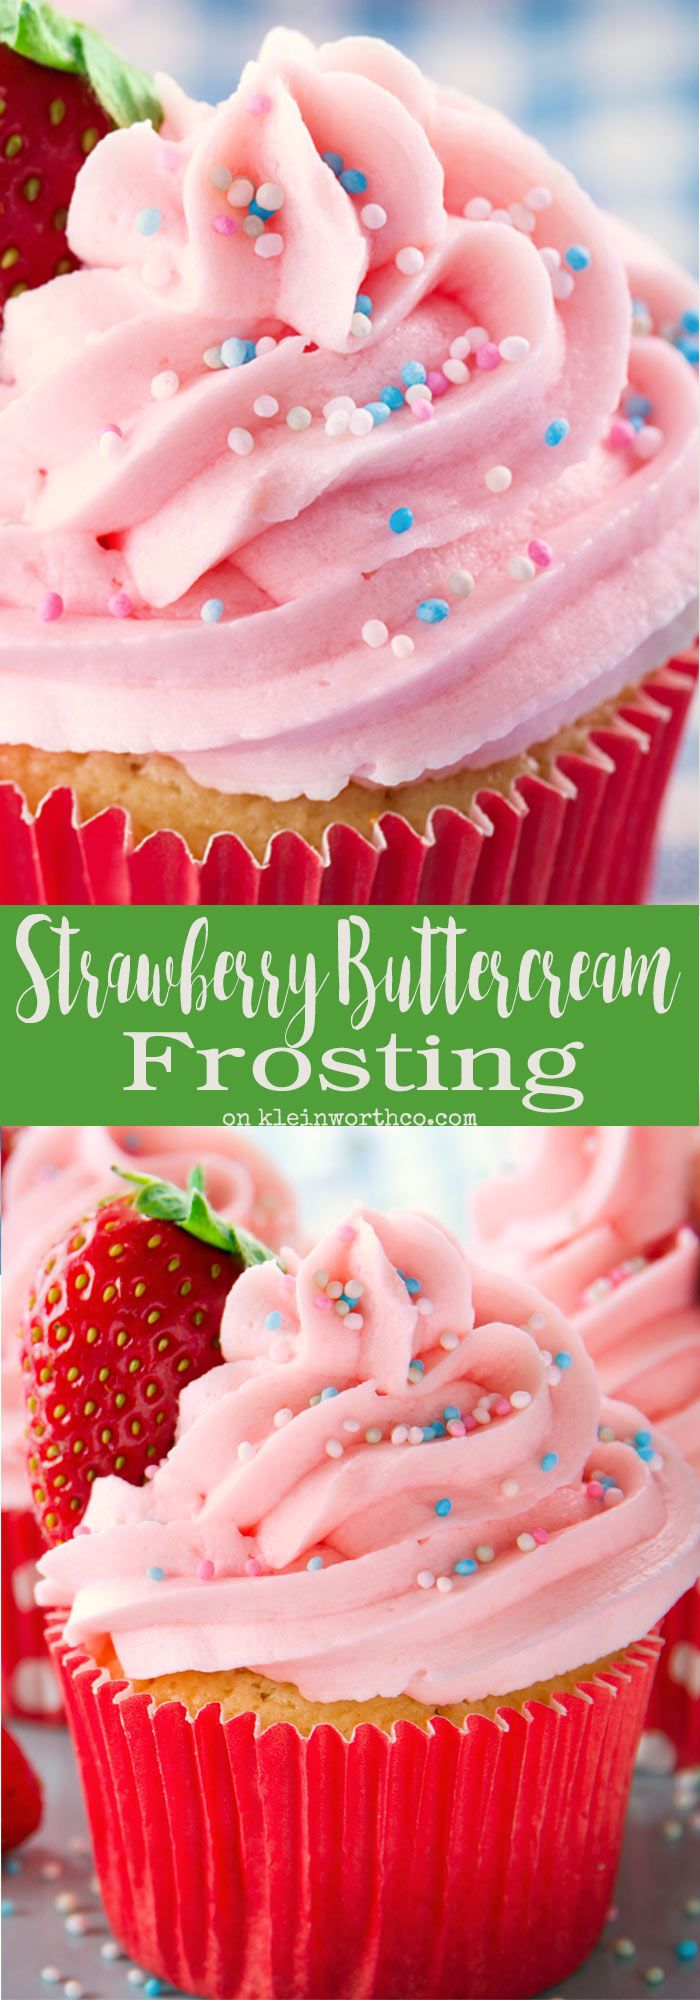 Fresh Strawberry Buttercream Frosting is the perfect way to bring the summer flavor of strawberries to your birthday or holiday celebrations. Yummy Dessert made with REAL fresh strawberries!